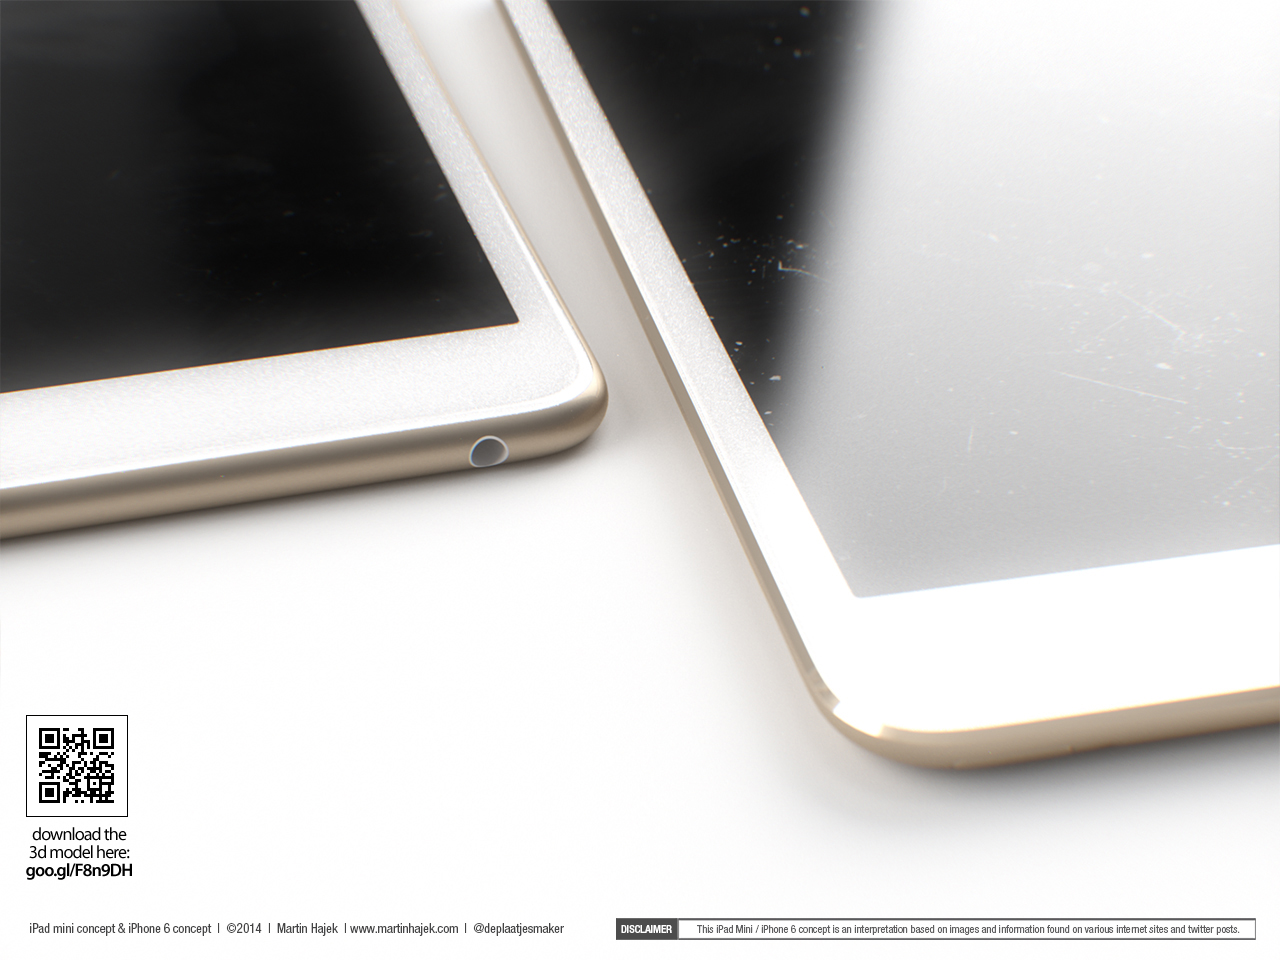 This-is-the-best-looking-iPhone-6-concept-weve-seen-so-far (6)